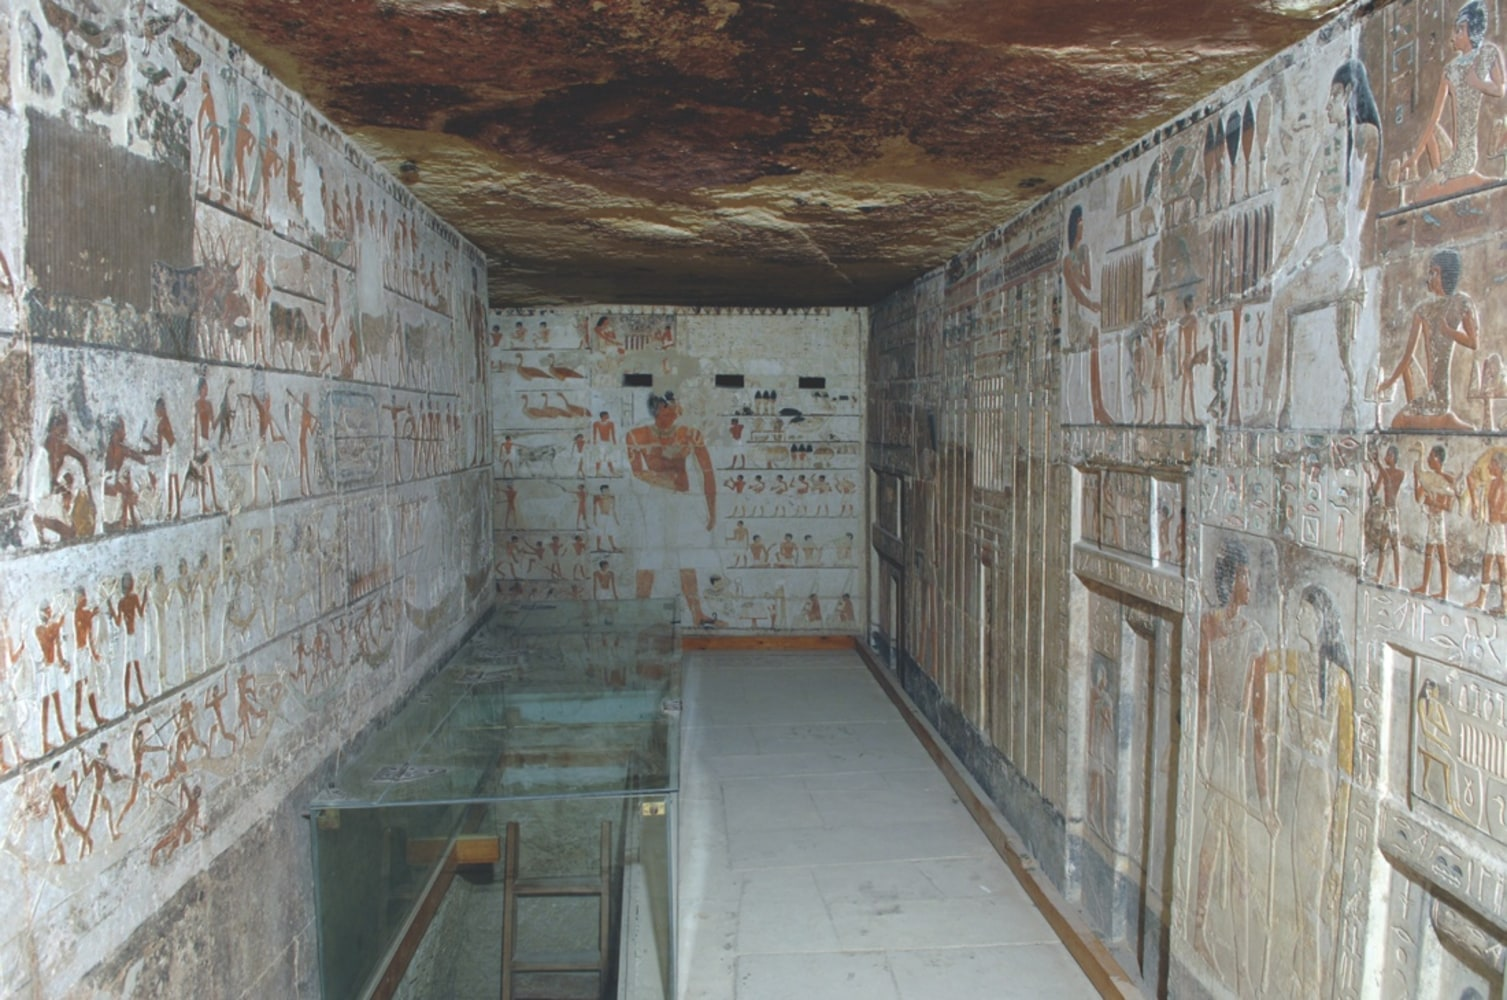 ancient egyptians and their marvelous work The pyramids and temples of egypt, which still stand as magnificent  moeller  writes about her discoveries and reviews the work of other.